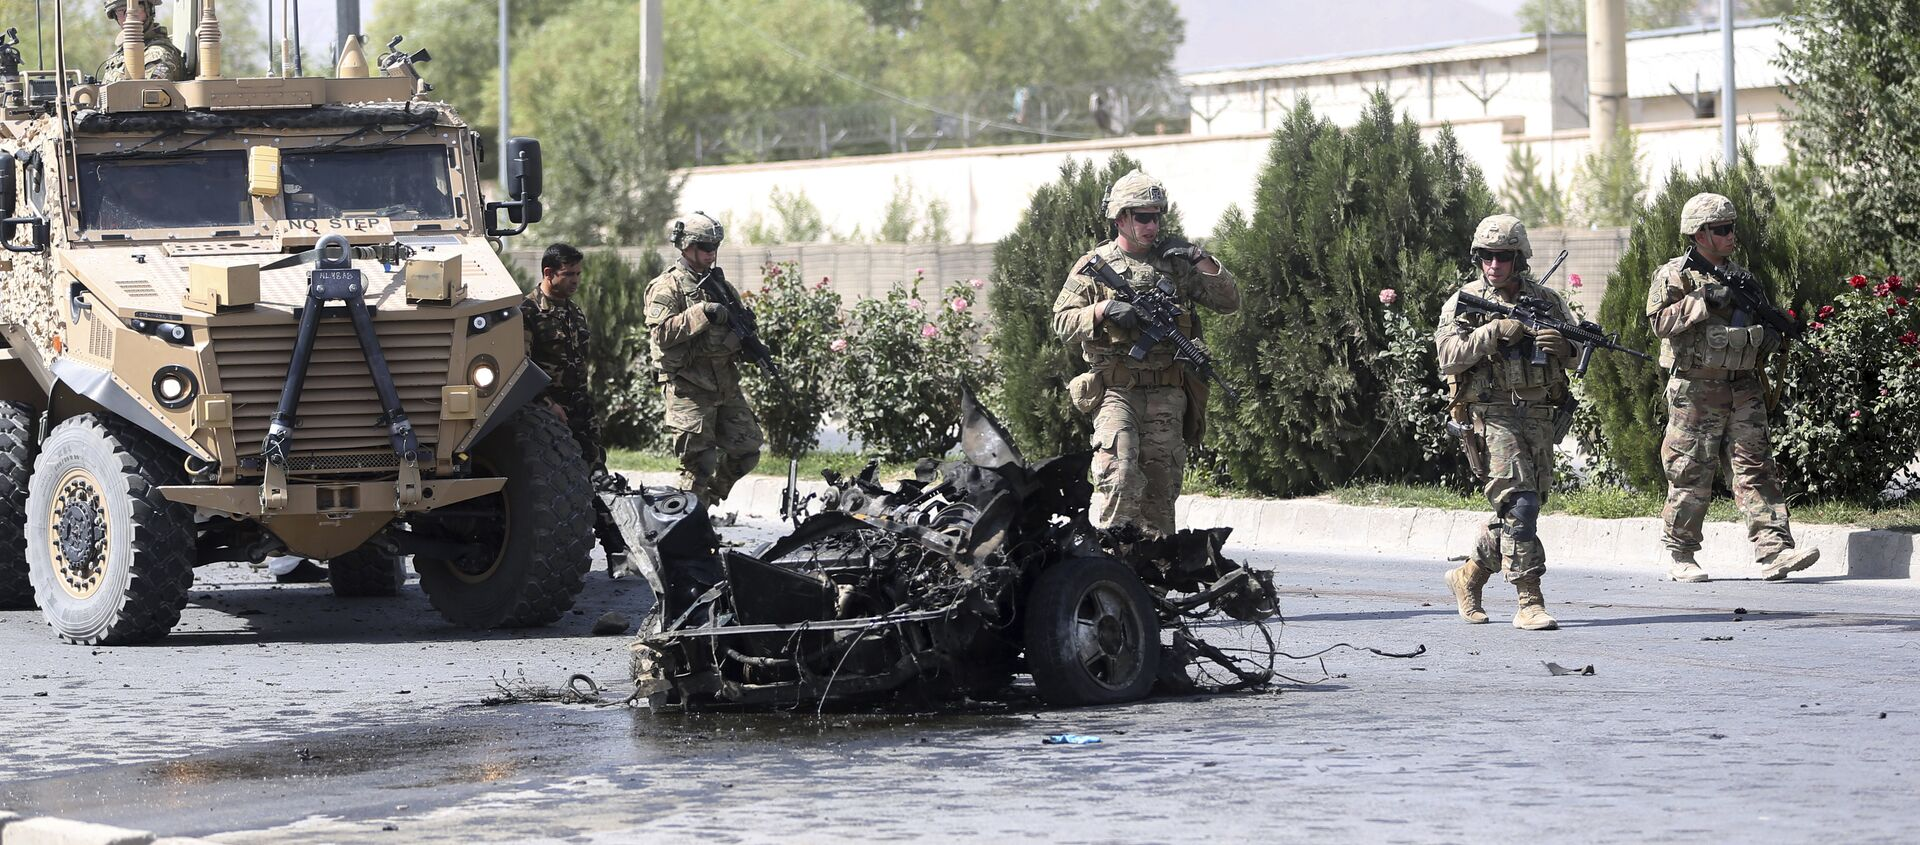 U.S. and Afghan security forces inspect the site of a suicide attack on NATO convoy in Kabul, Afghanistan, Sunday, Sept. 24, 2017 - Sputnik International, 1920, 11.07.2021